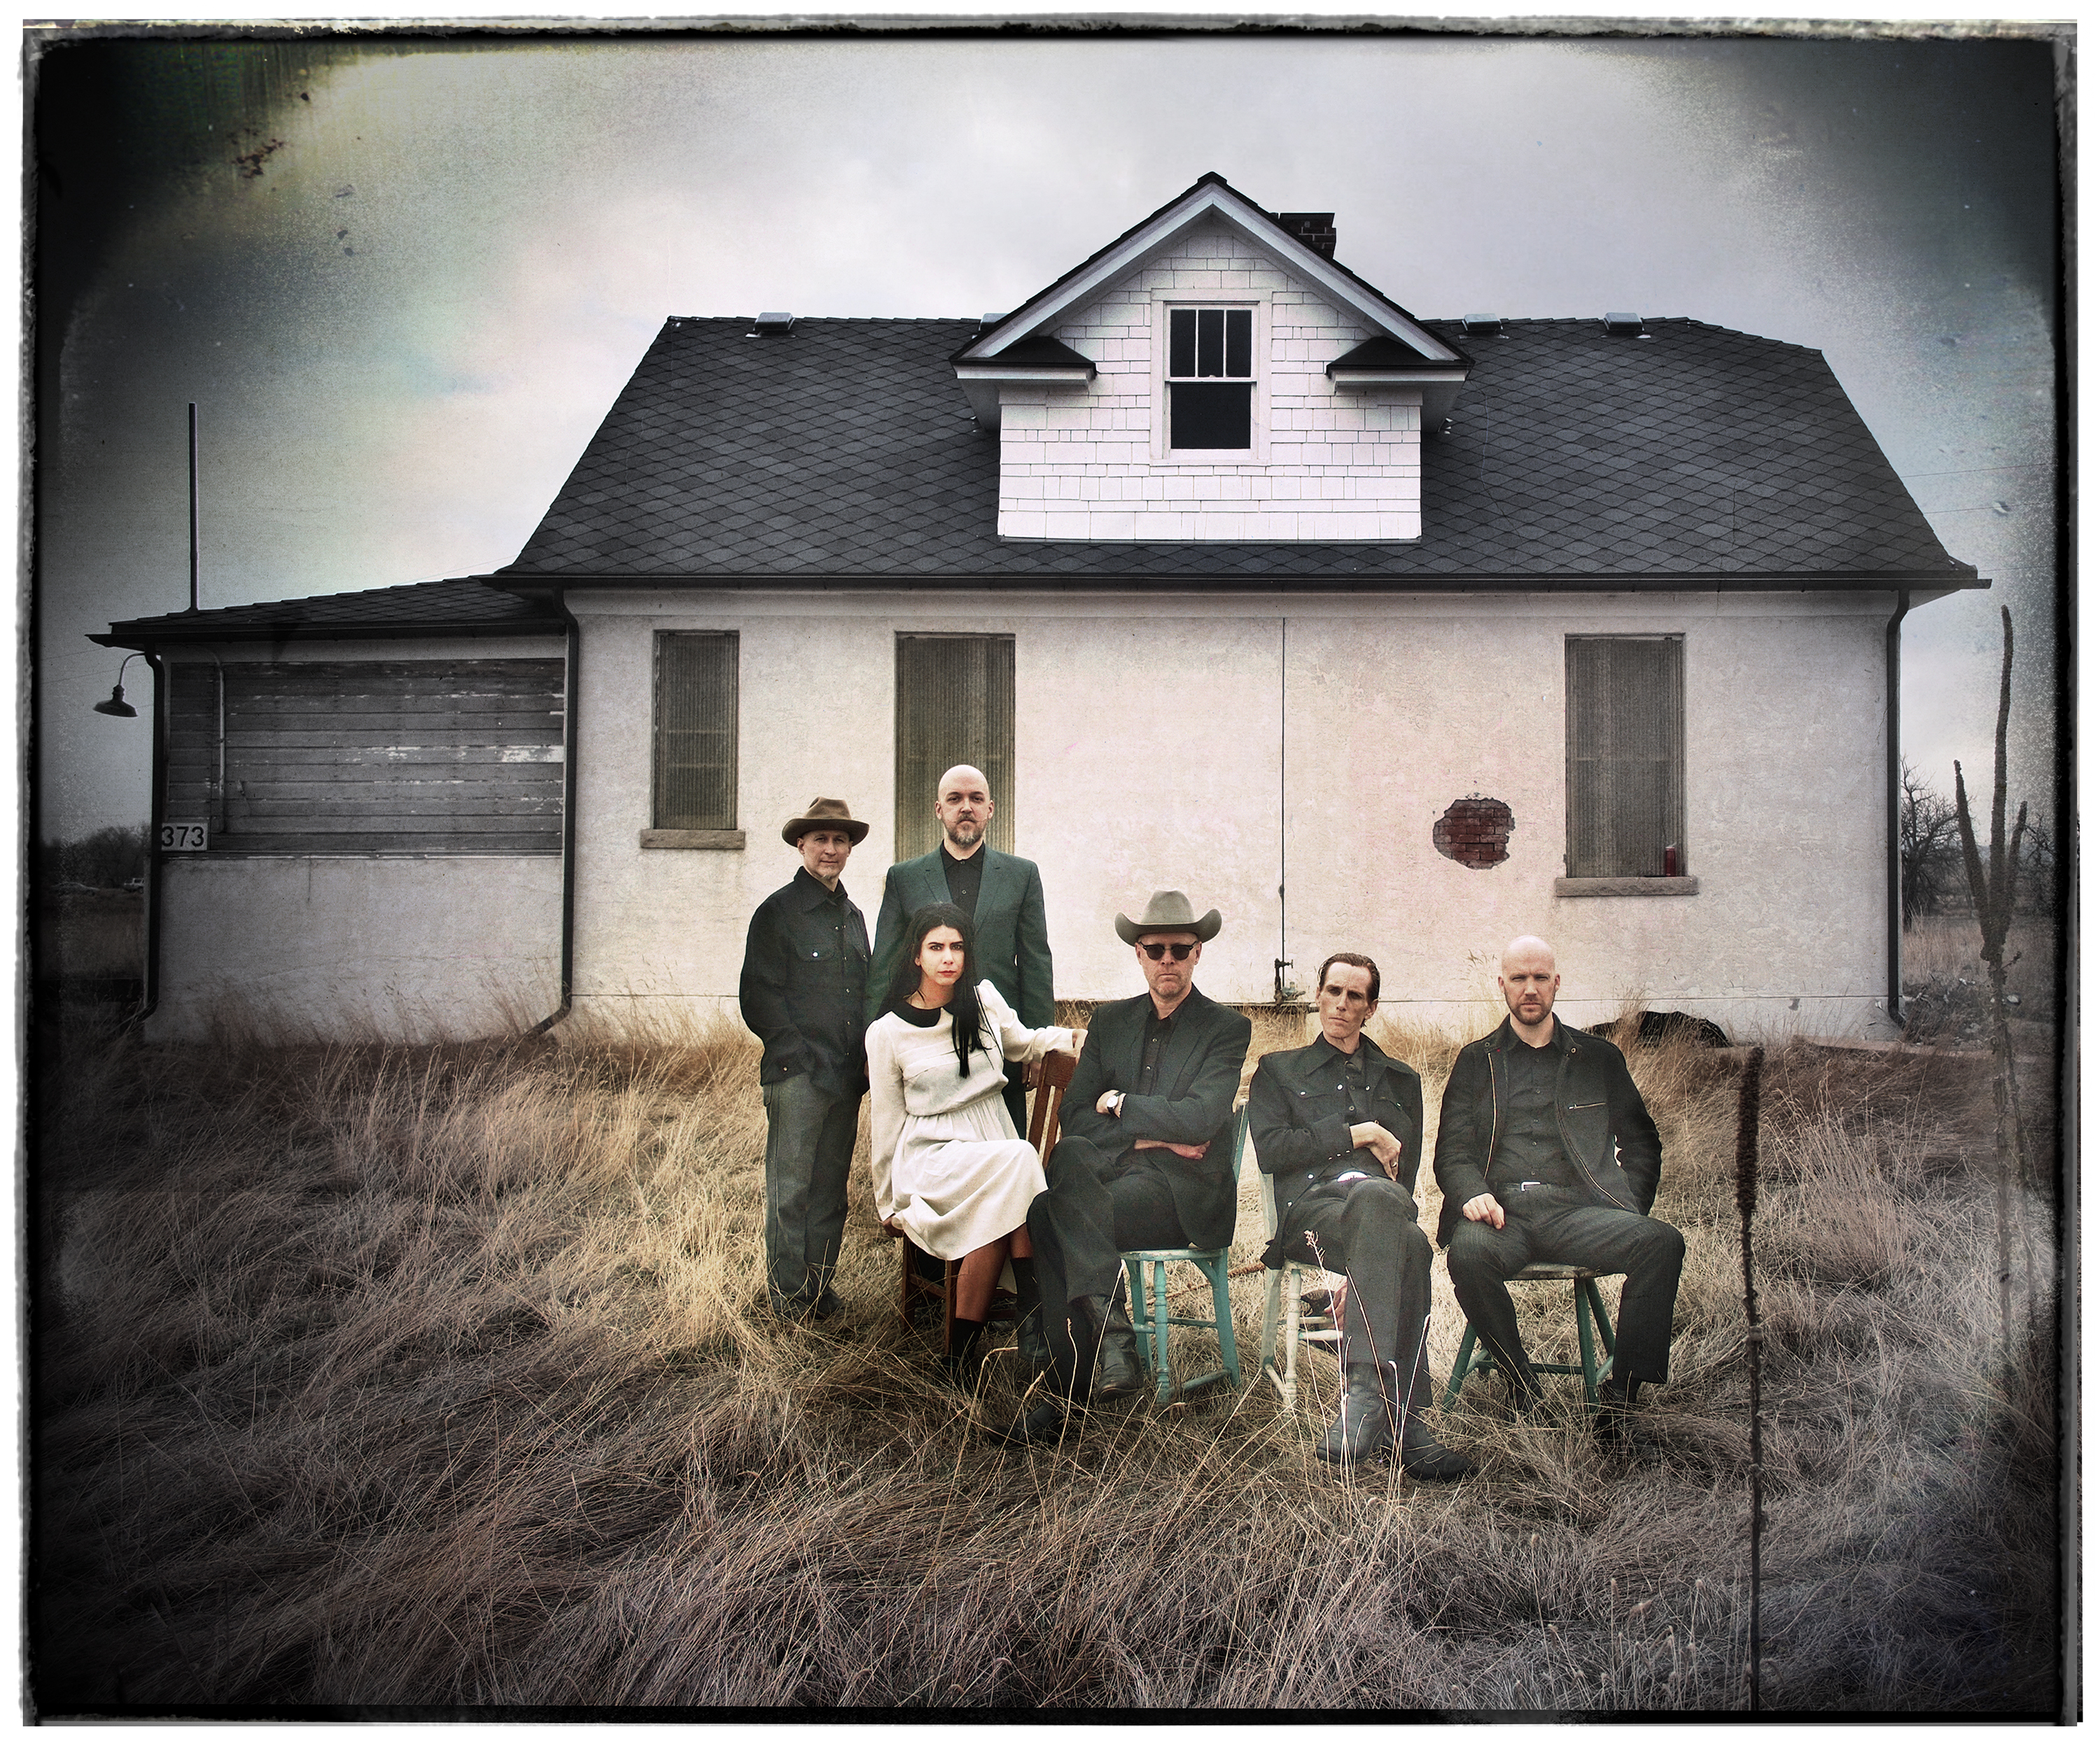 slim cessna's auto club band photo gary isaacs gothic americana cabaret country denver colorado music